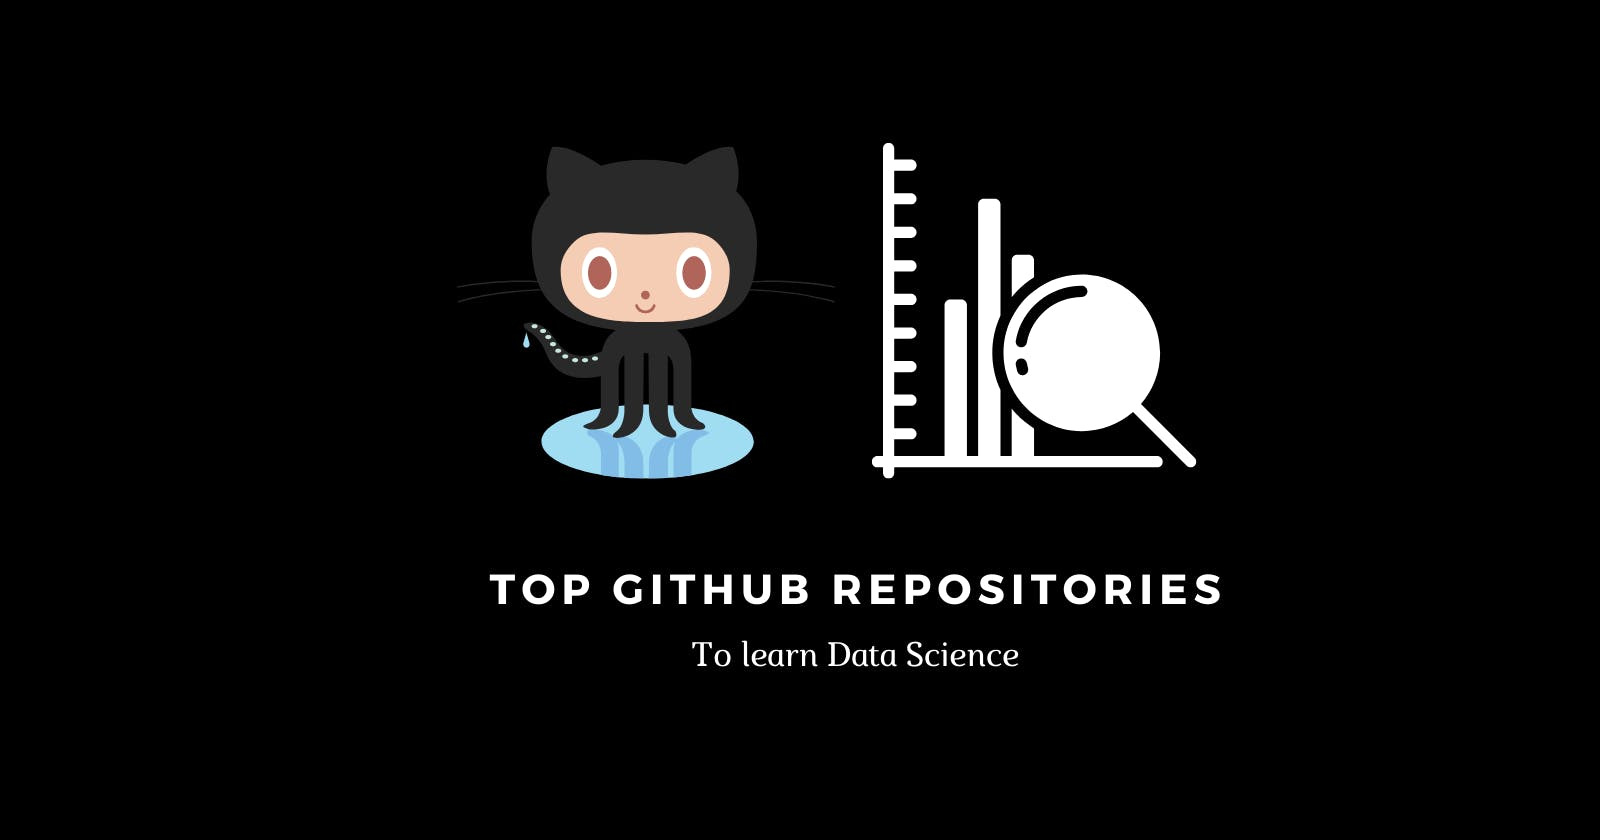 Top GitHub repositories to learn Data Science